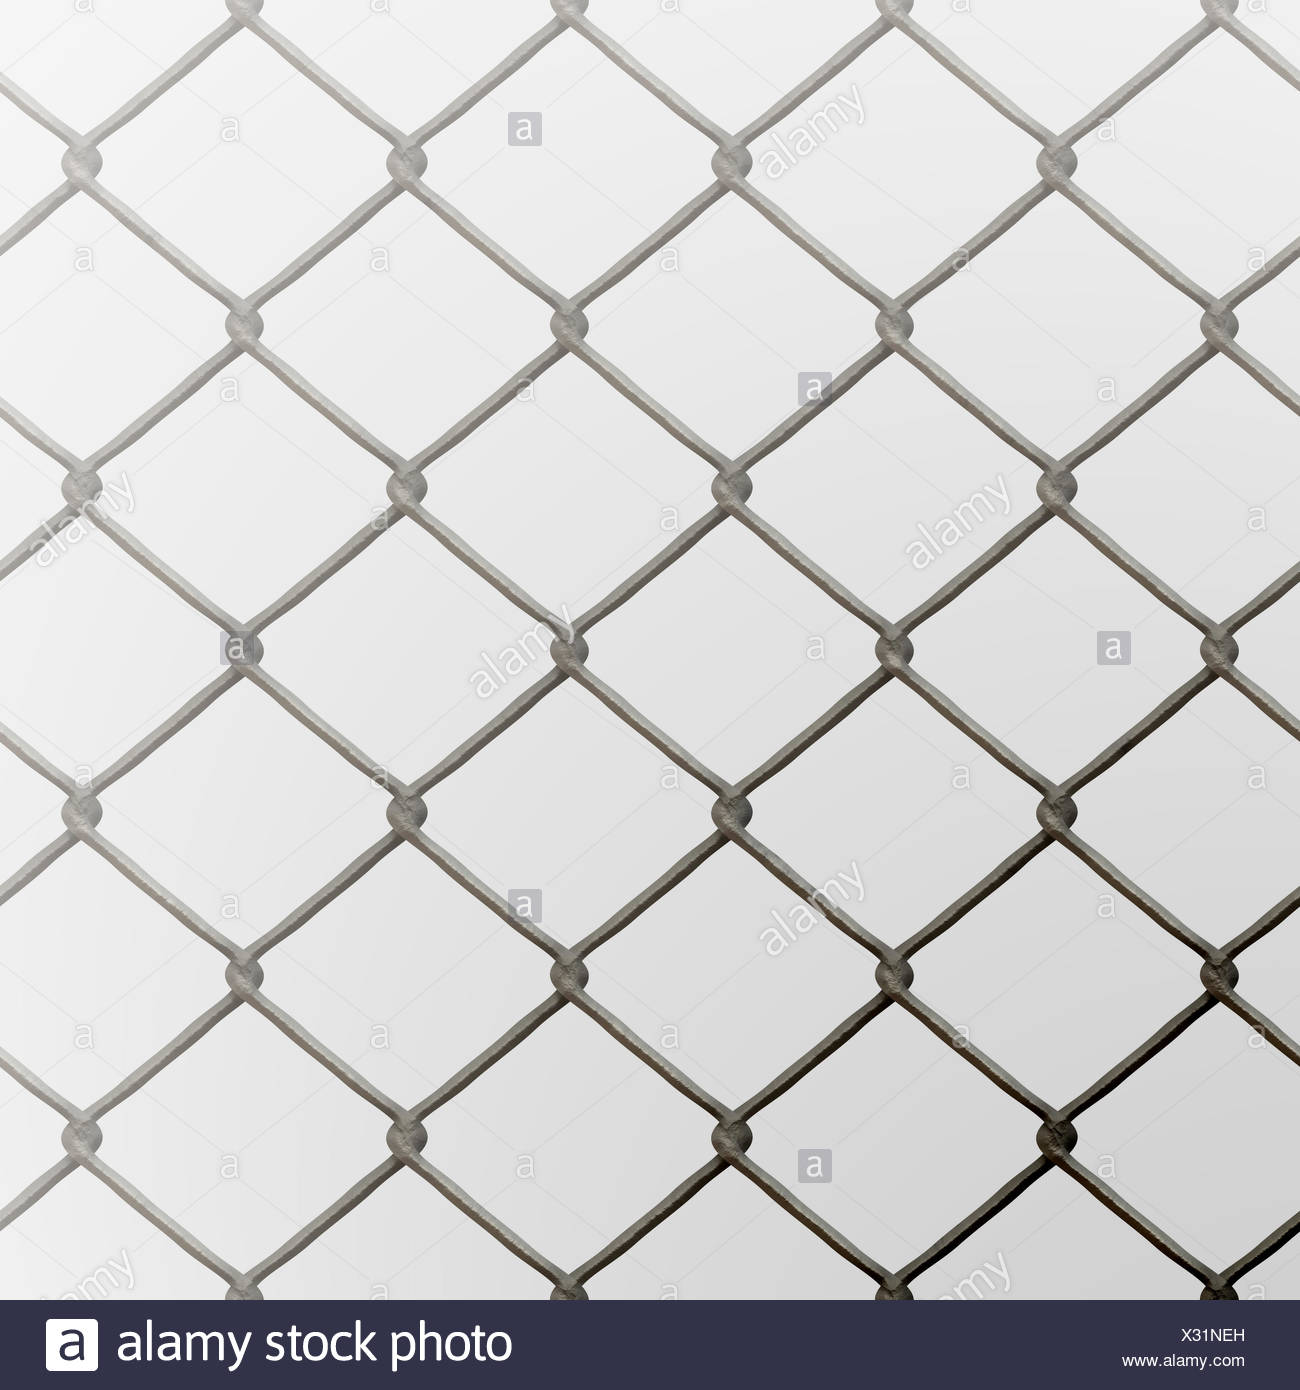 Barrier Chain Stockfotos & Barrier Chain Bilder - Seite 3 - Alamy